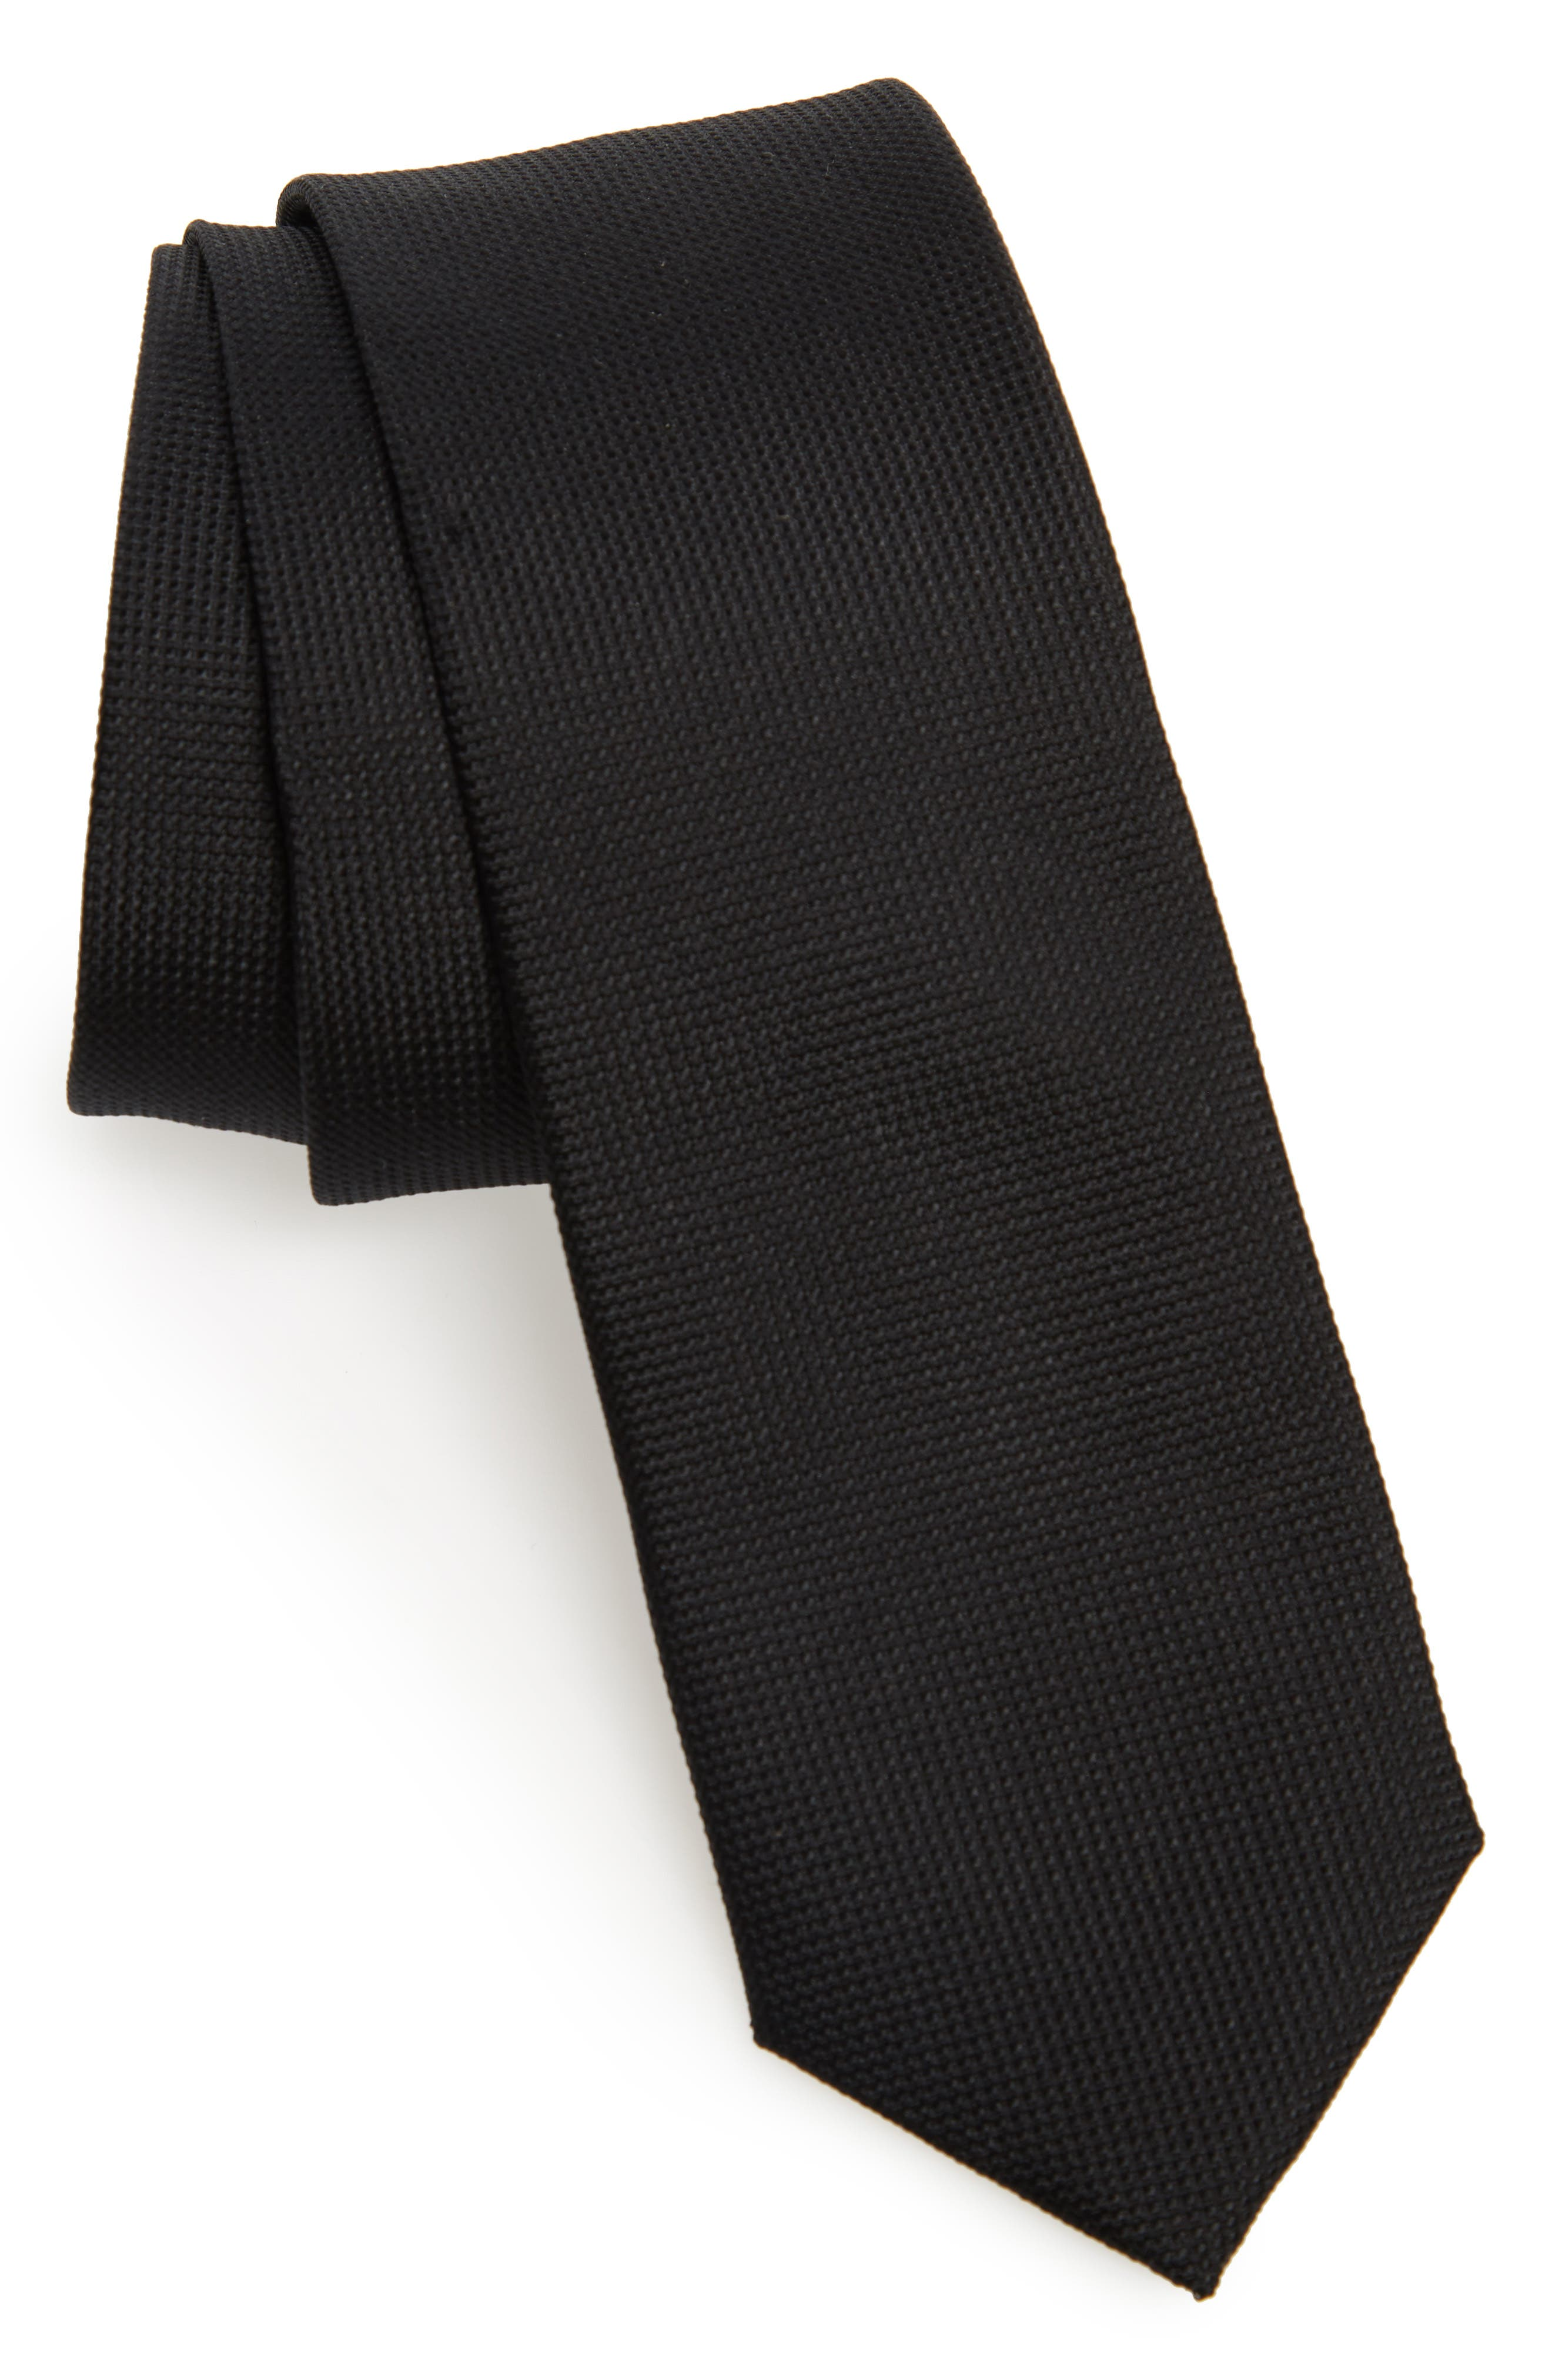 Jameswood Silk Tie,                             Main thumbnail 1, color,                             BLACK